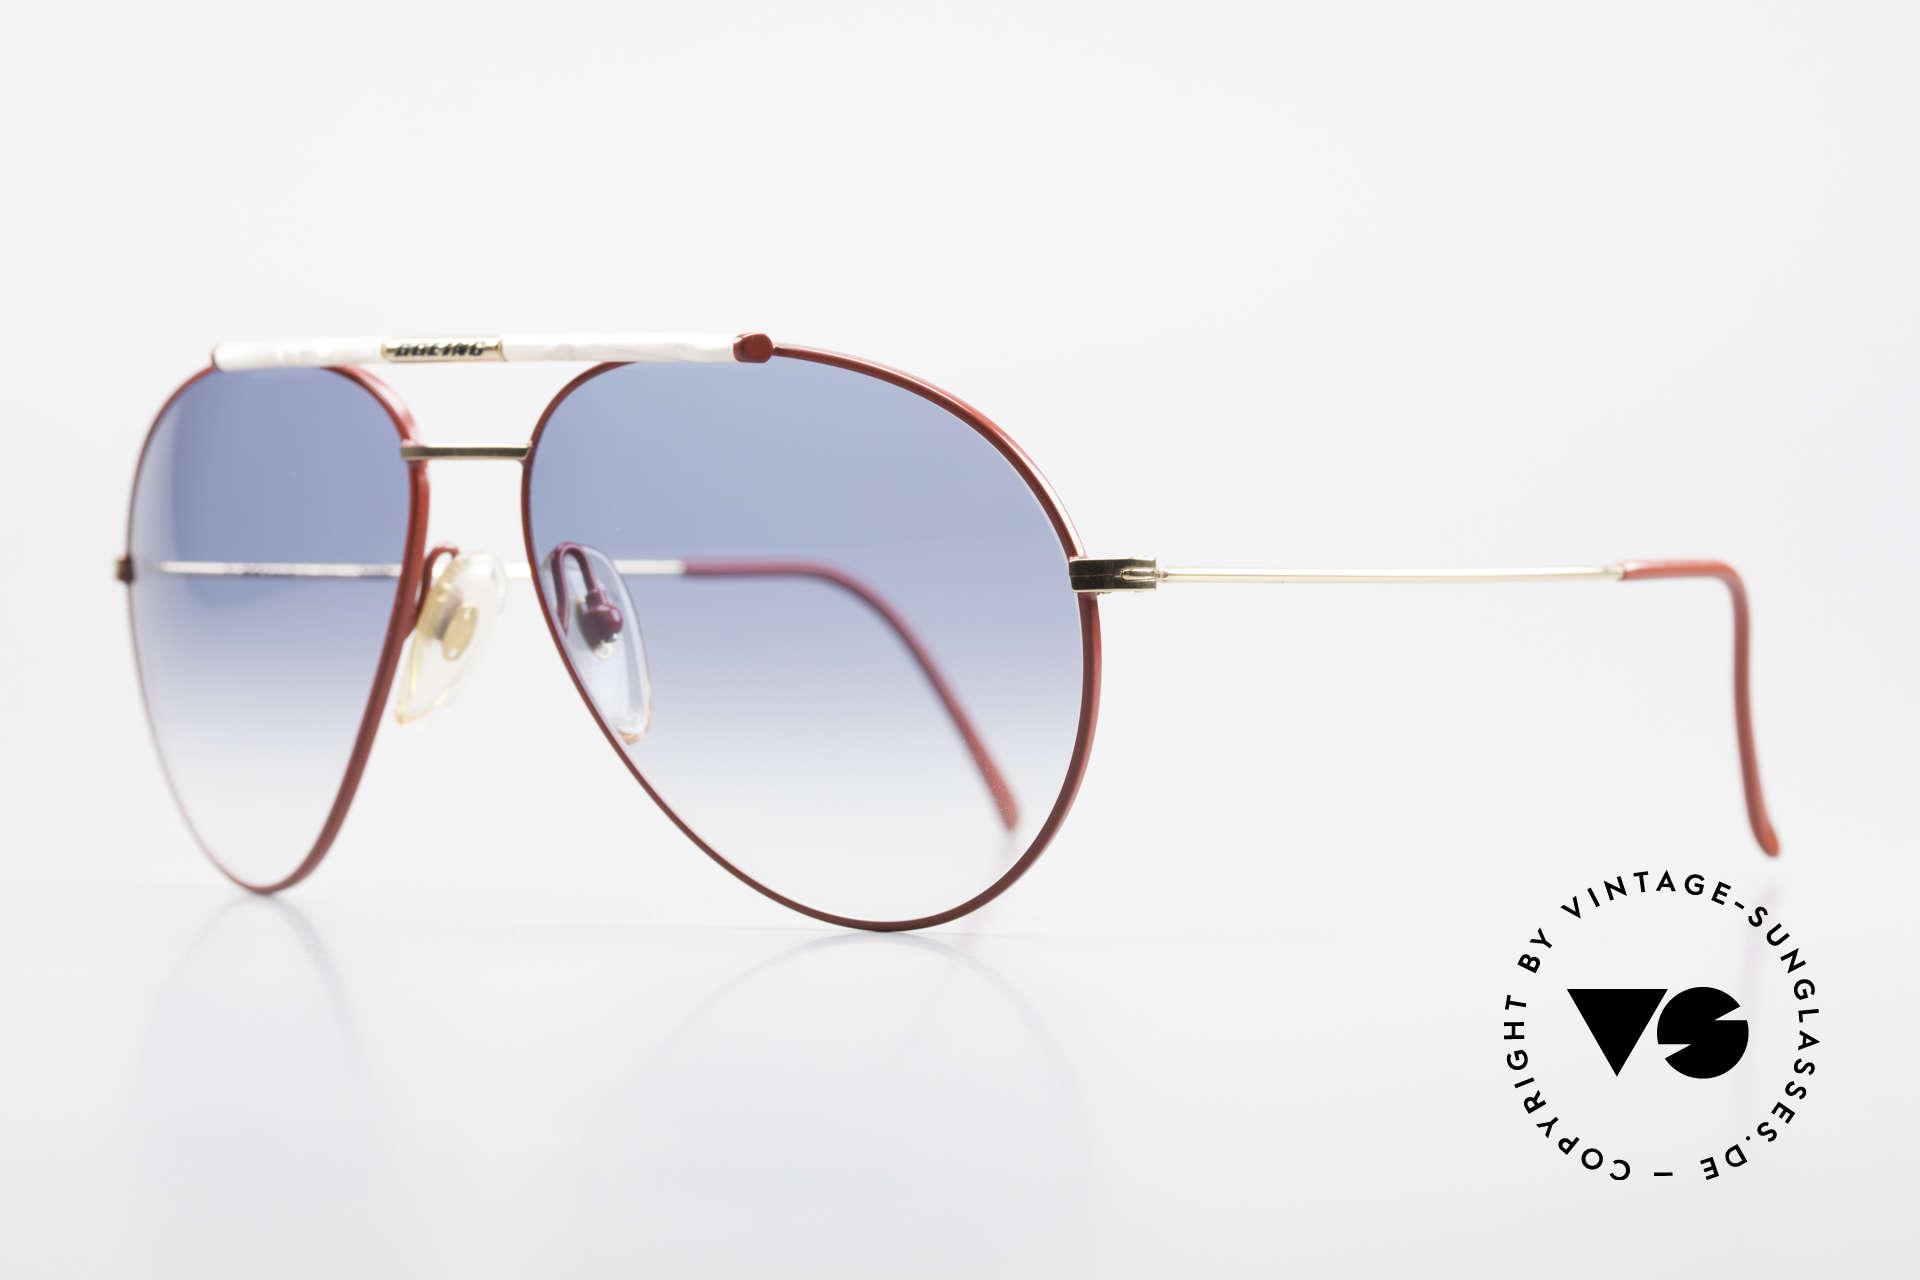 Boeing 5706 No Retro Sunglasses Vintage, conspicuous bar with the prestigious Boeing label, Made for Men and Women